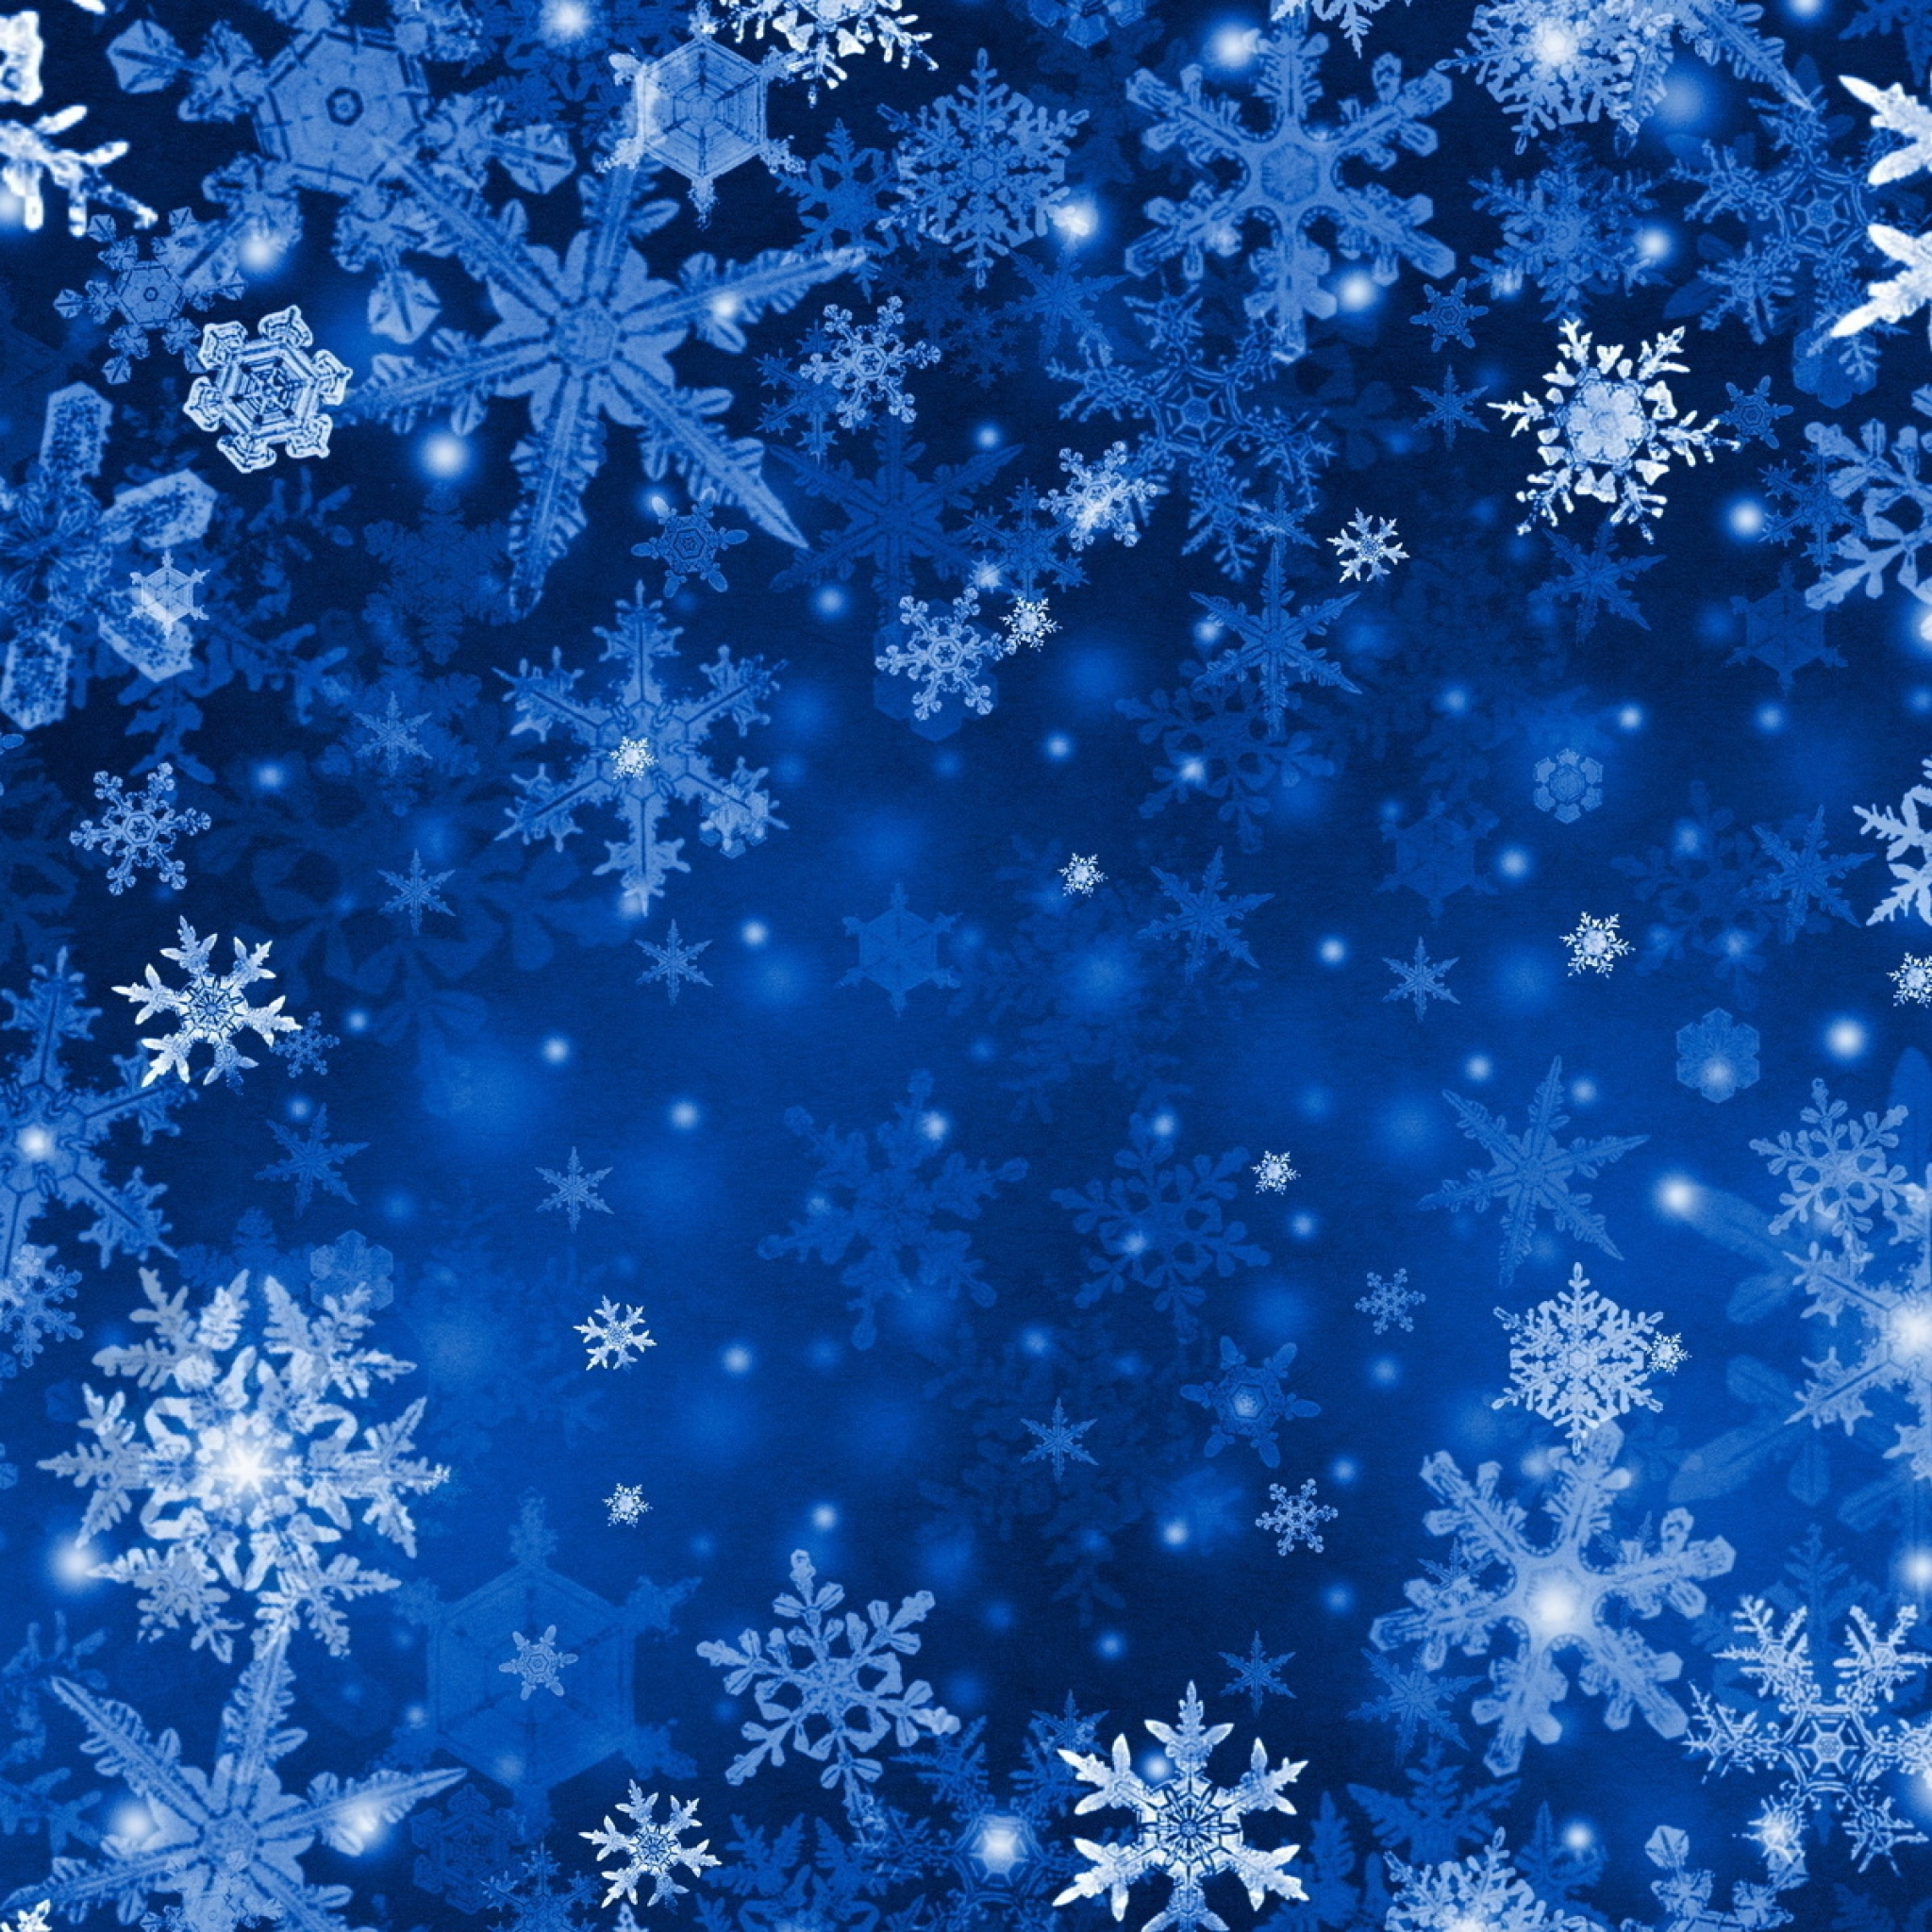 2048x2048 Wallpaper snowflakes background bright texture winter 2048x2048